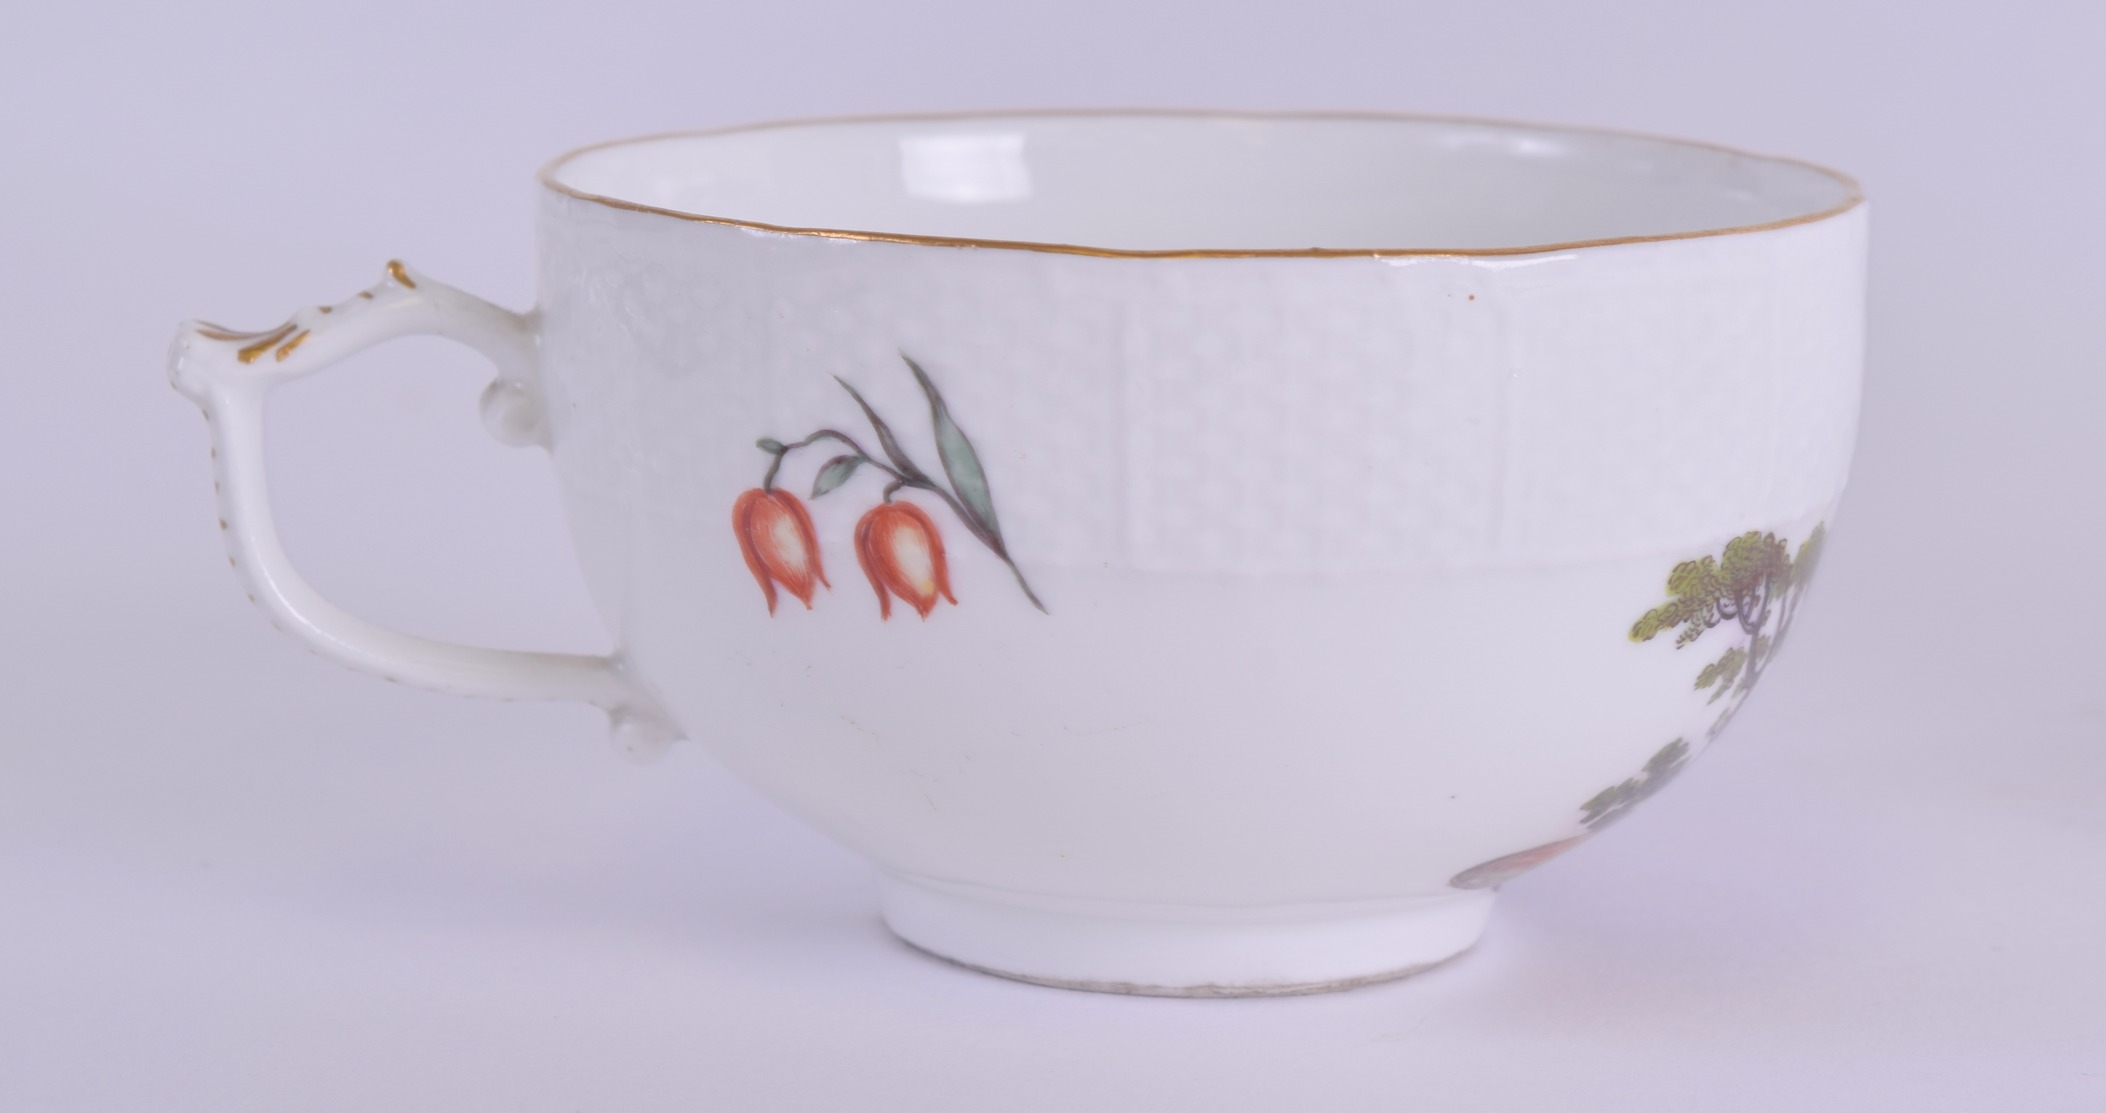 Lot 110 - AN 18TH/19TH CENTURY MEISSEN PORCELAIN TEACUP AND SAUCER painted with figures within landscapes.